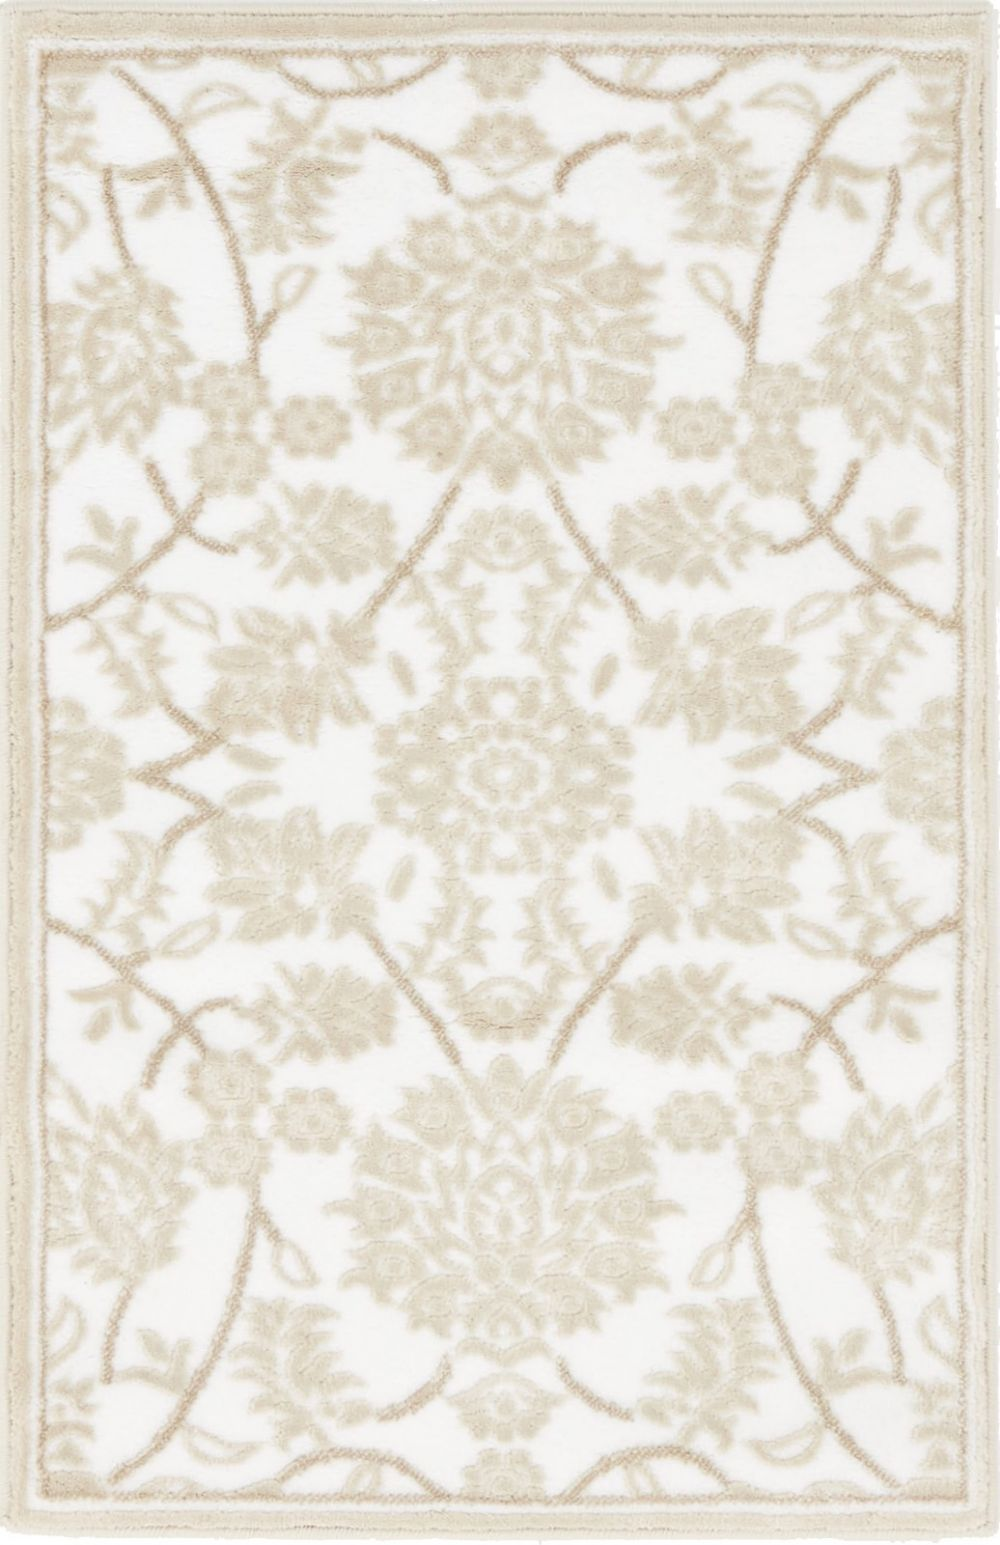 rugpal keystone country & floral area rug collection